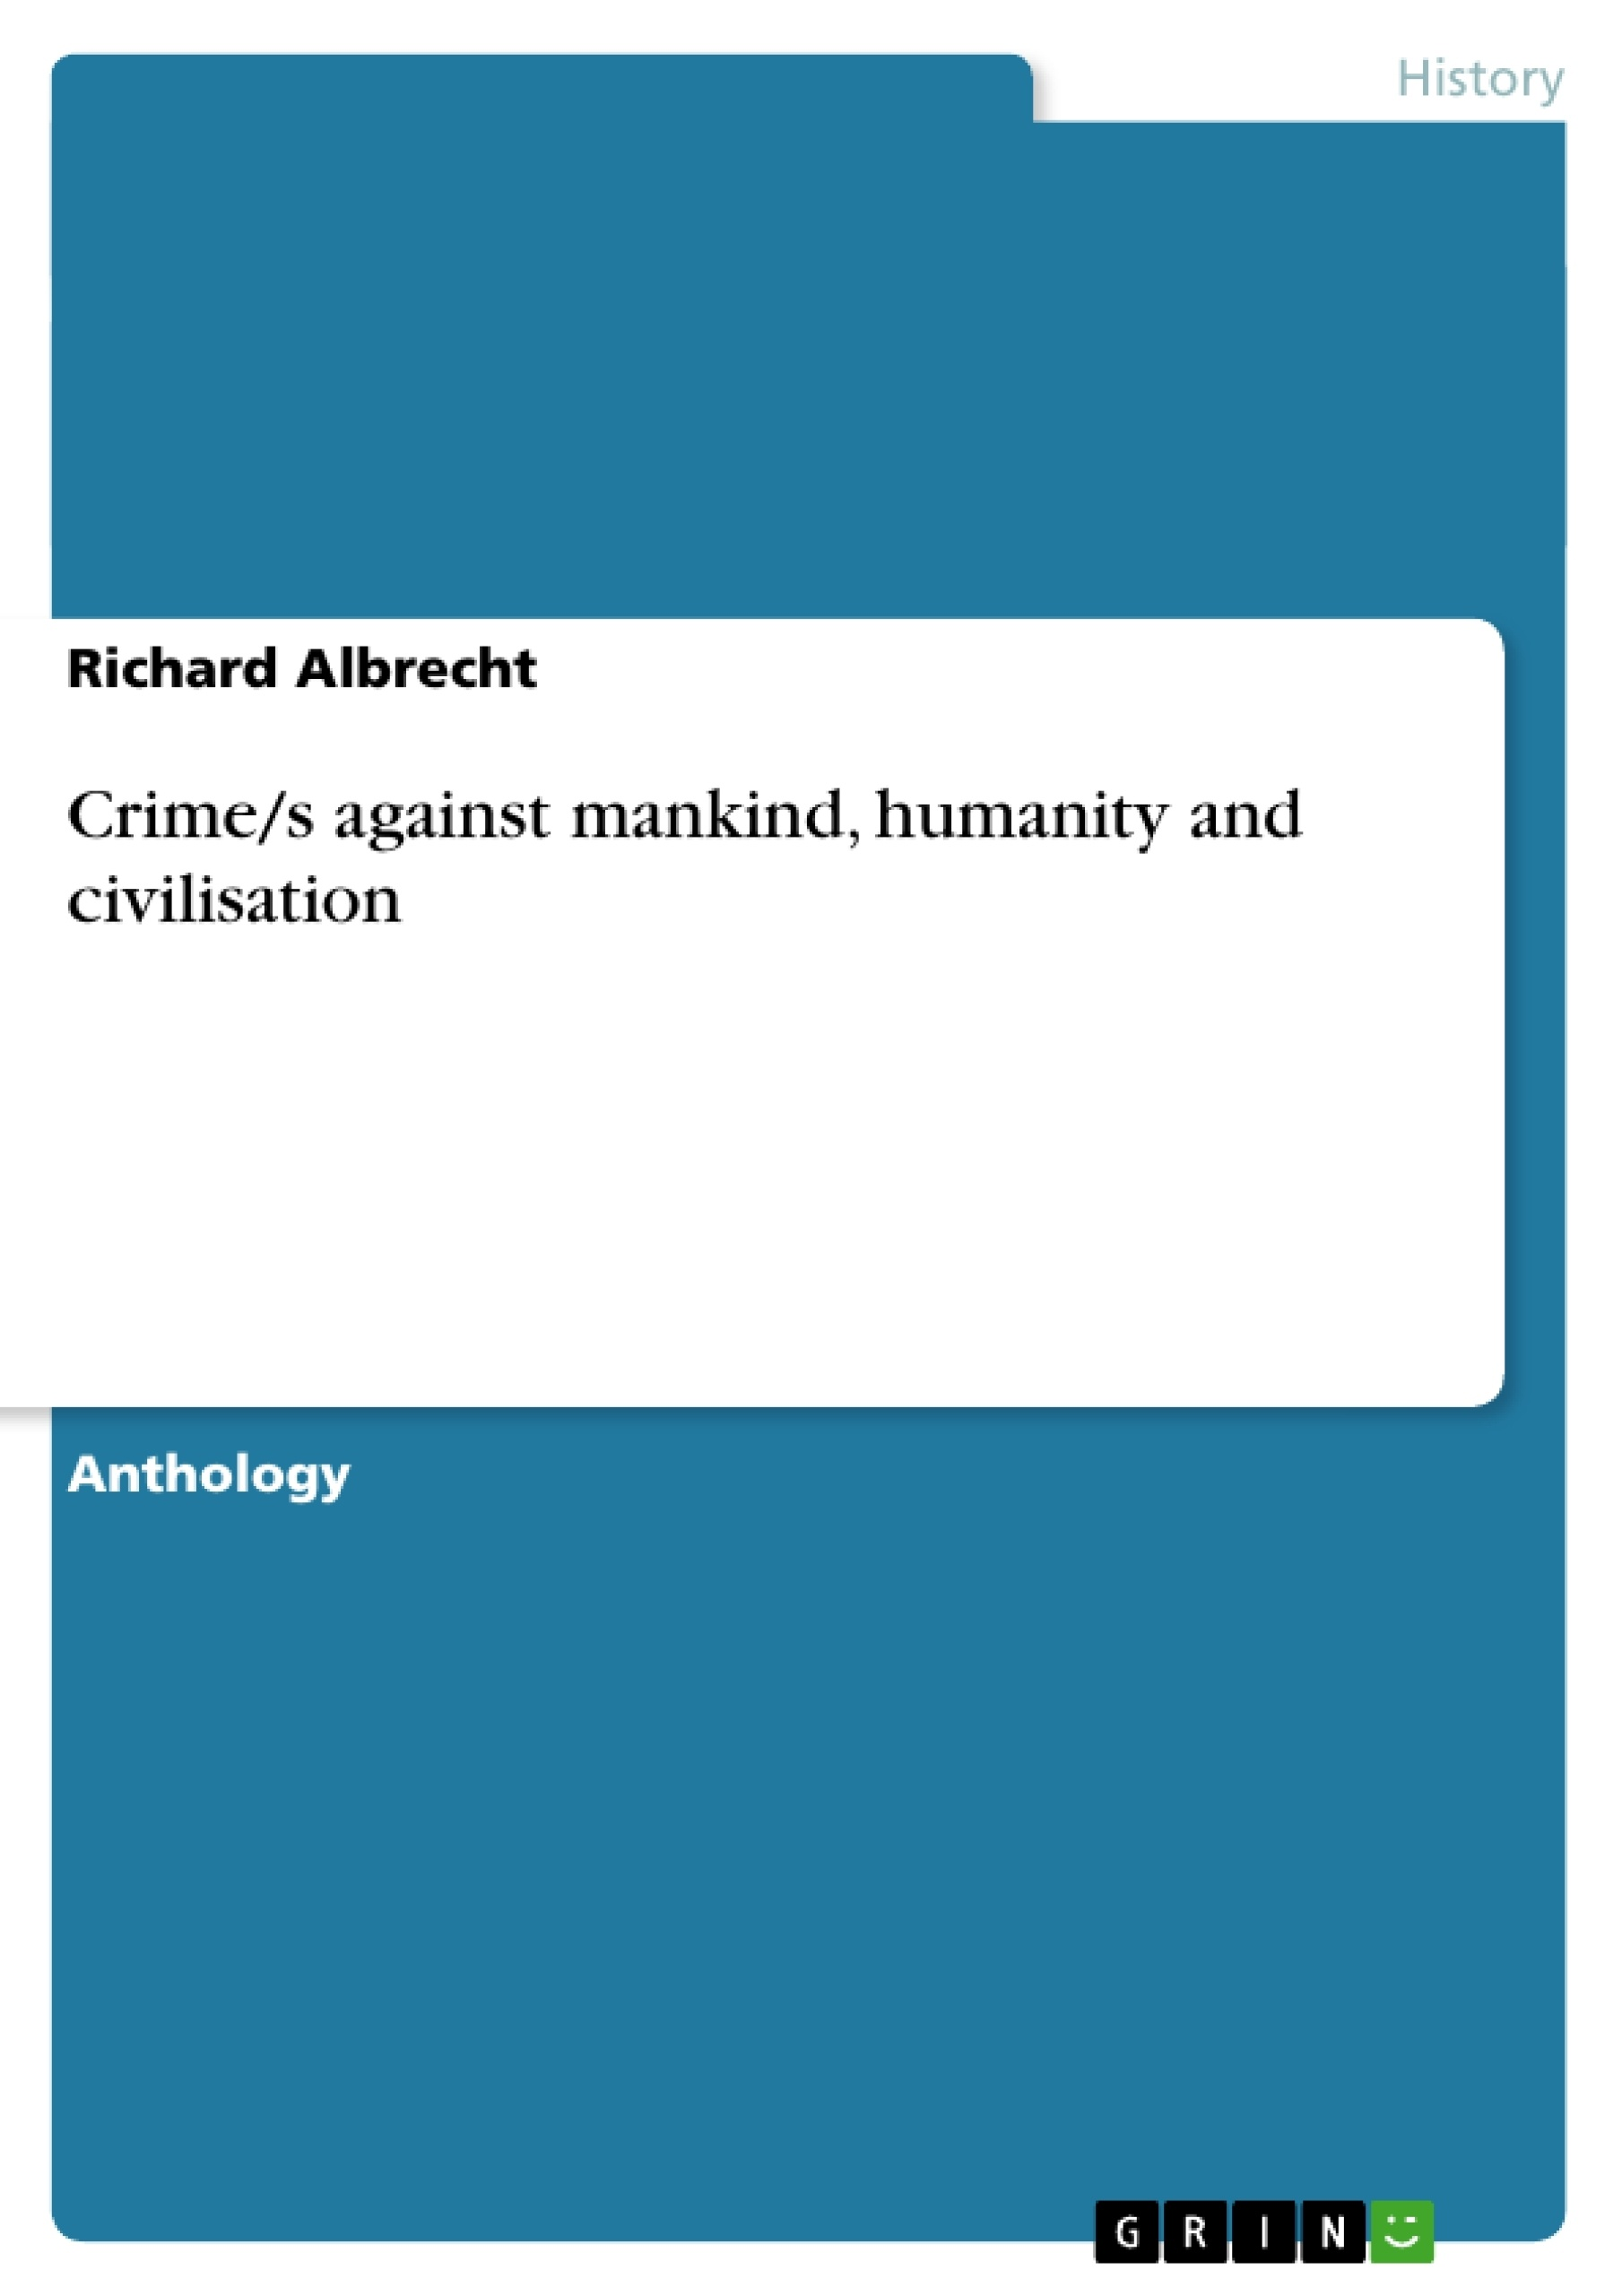 Title: Crime/s against mankind, humanity and civilisation